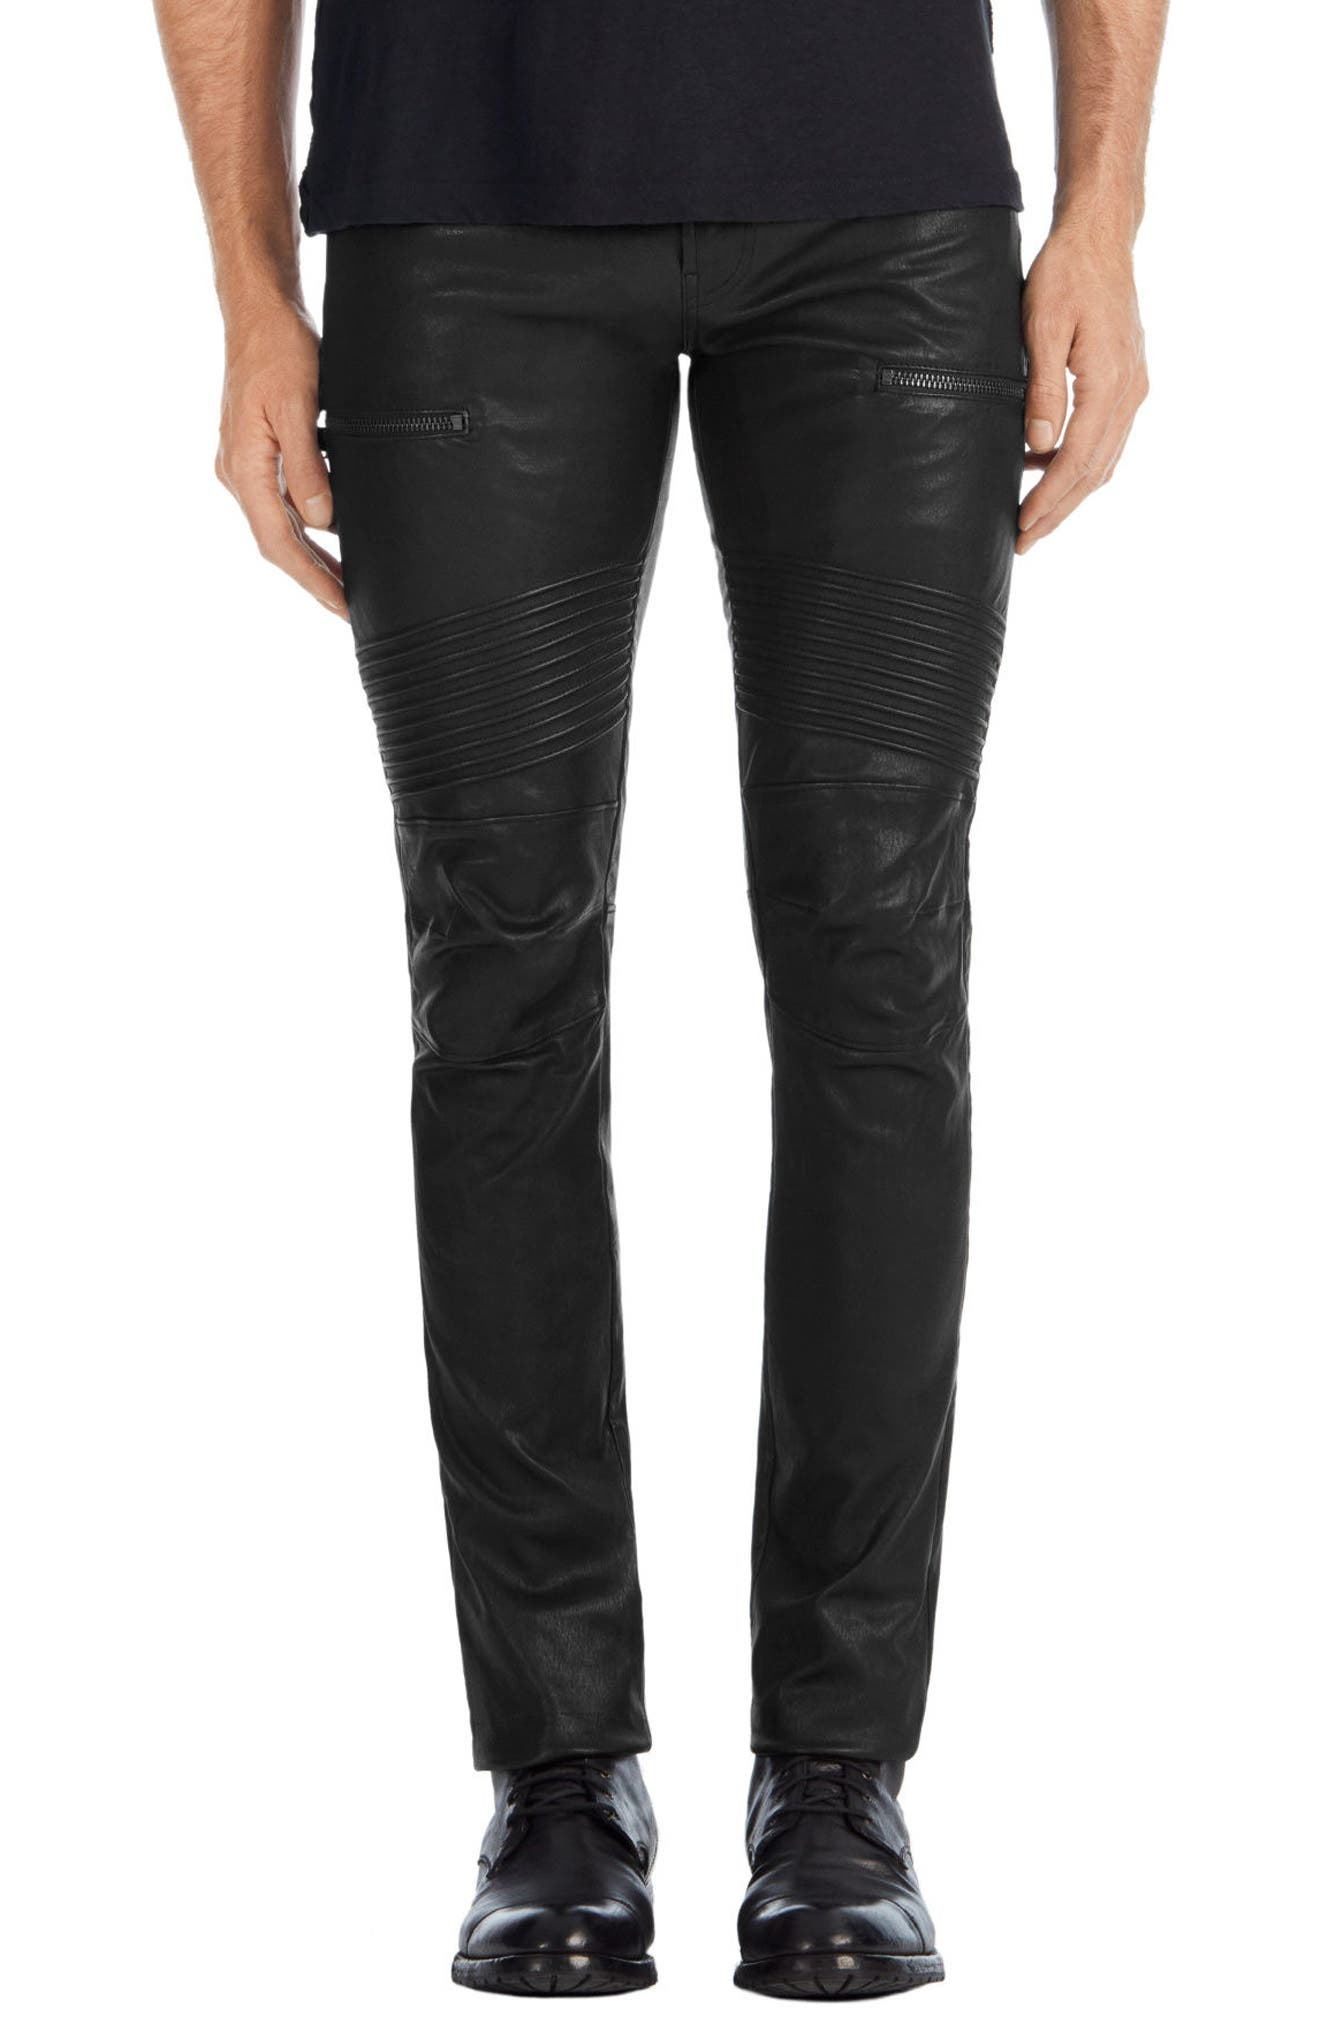 Acrux Skinny Fit Moto Leather Pants,                         Main,                         color, 001